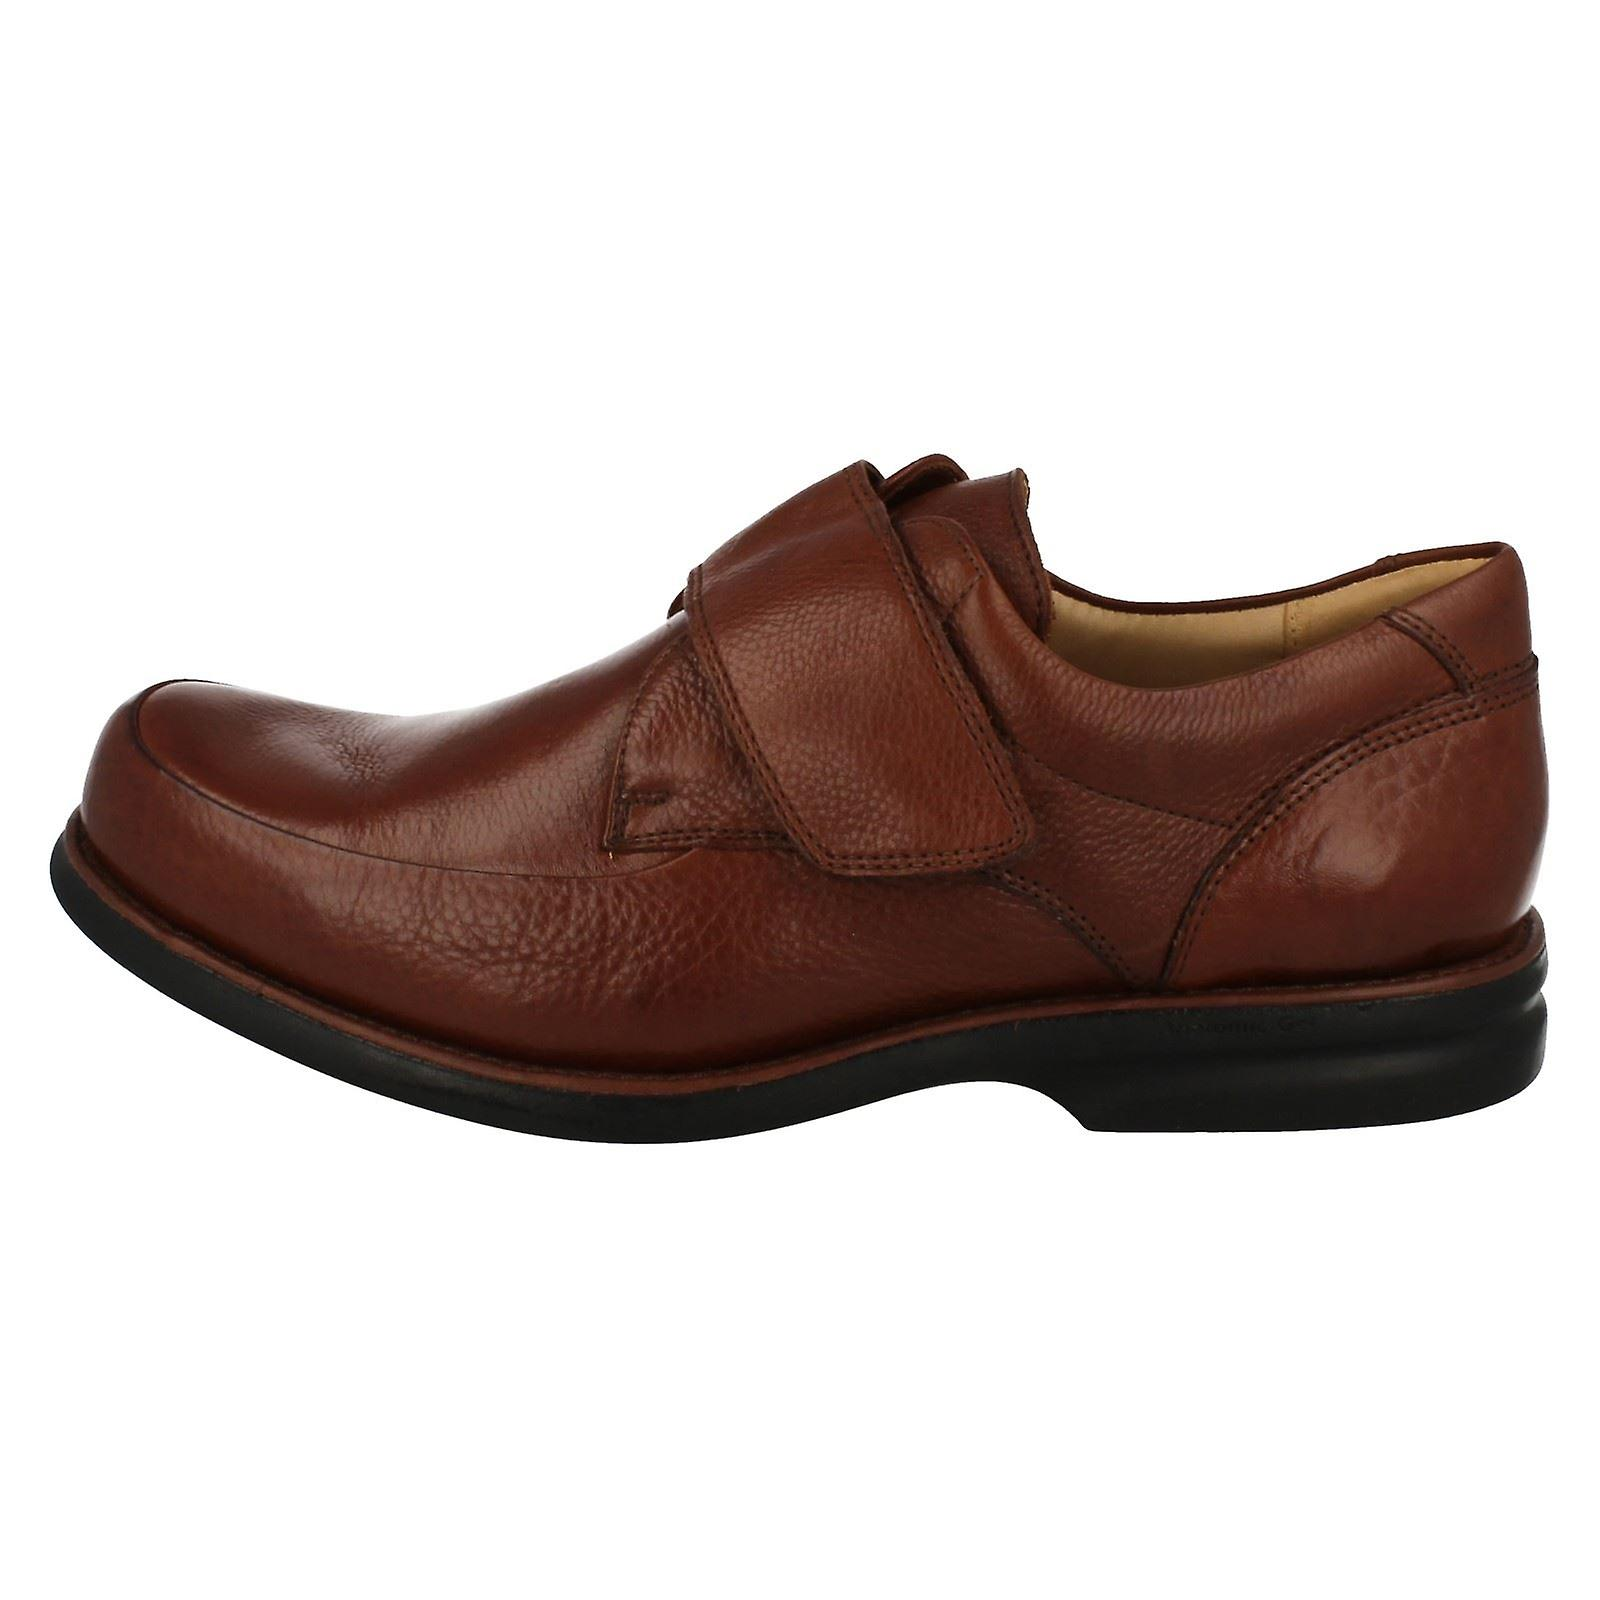 Mens anatomique Smart/Casual chaussures Tapajos